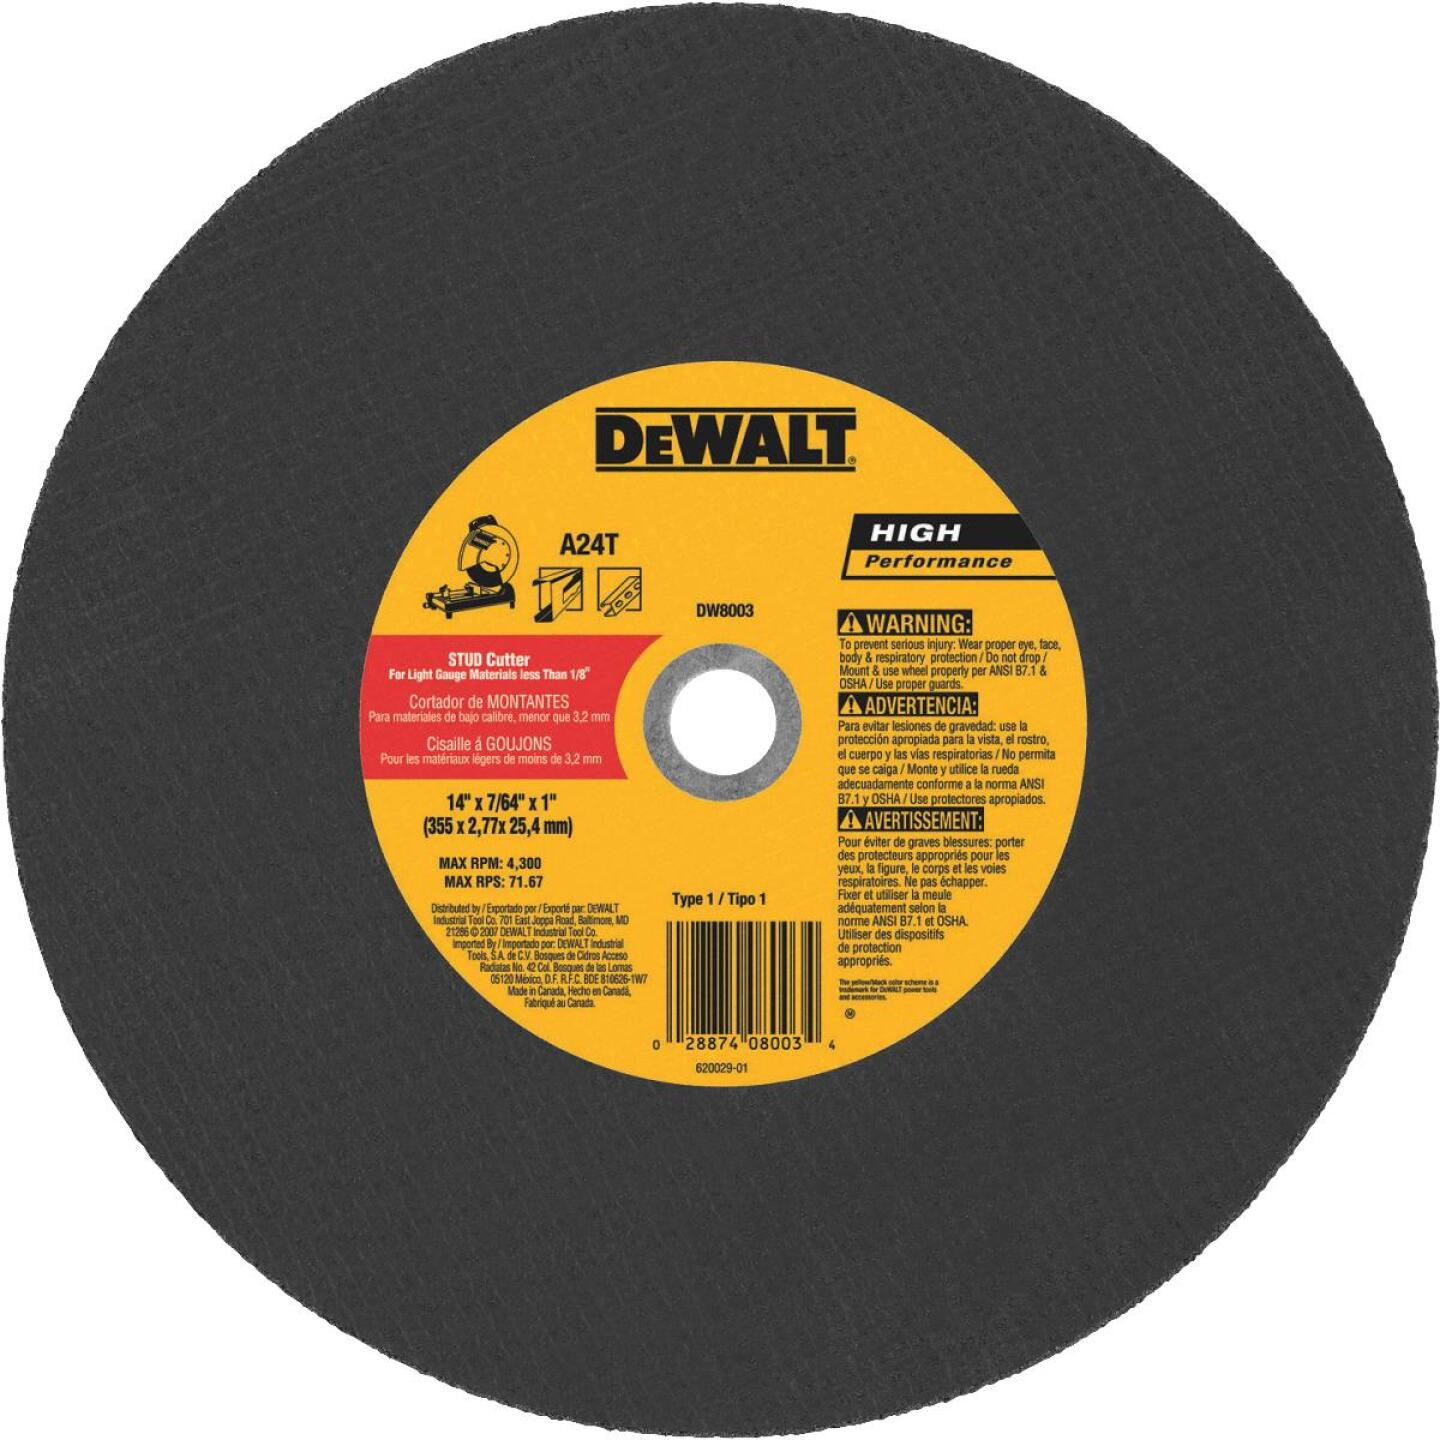 DeWalt HP Type 1, 14 In. Cut-Off Wheel Image 1